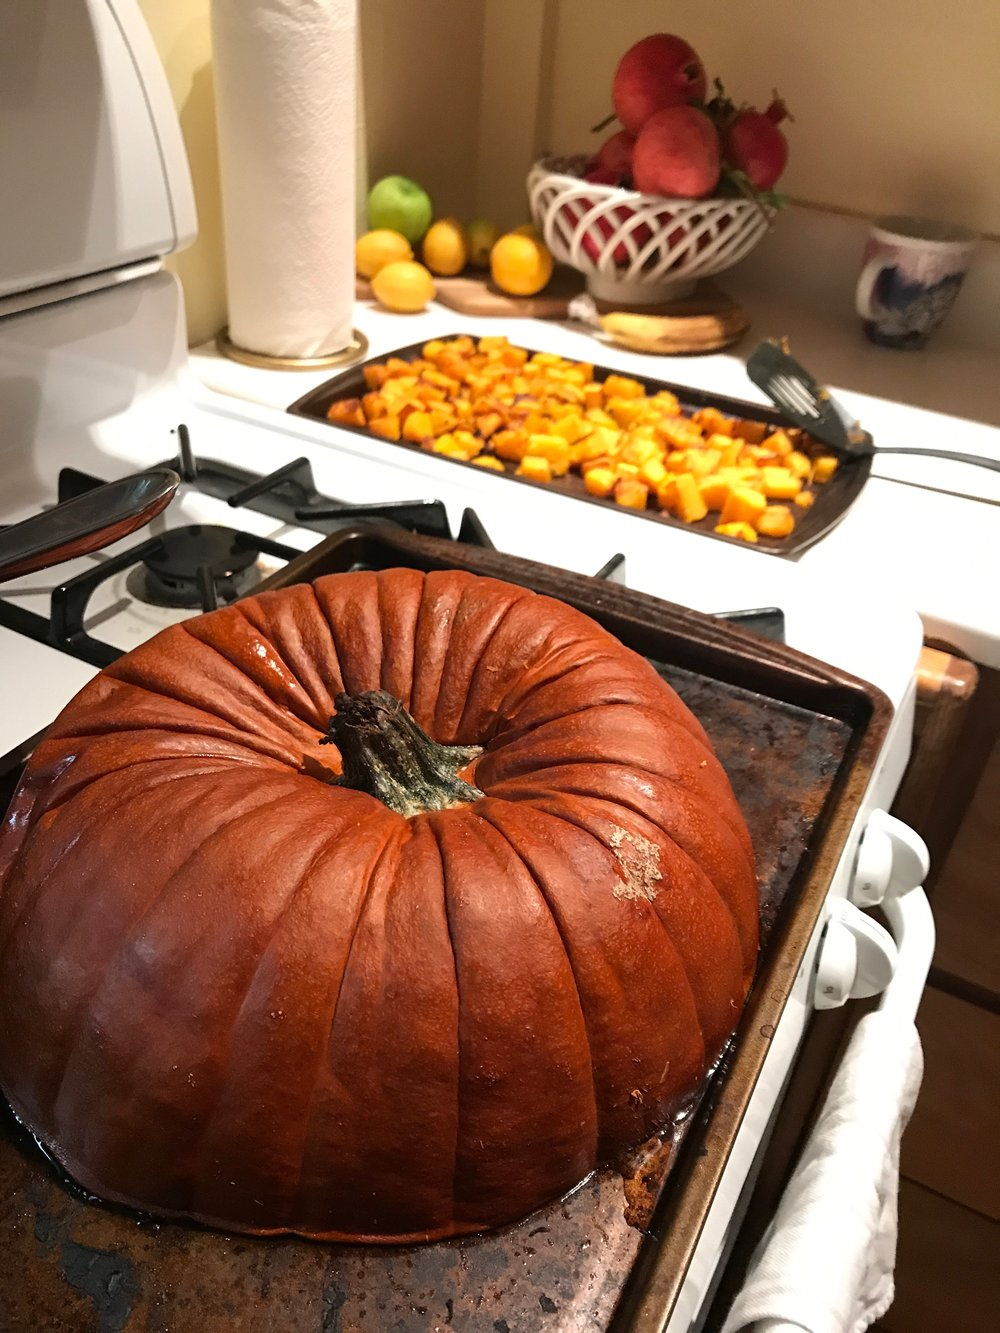 using up the rest of a large pumpkin - roast it!